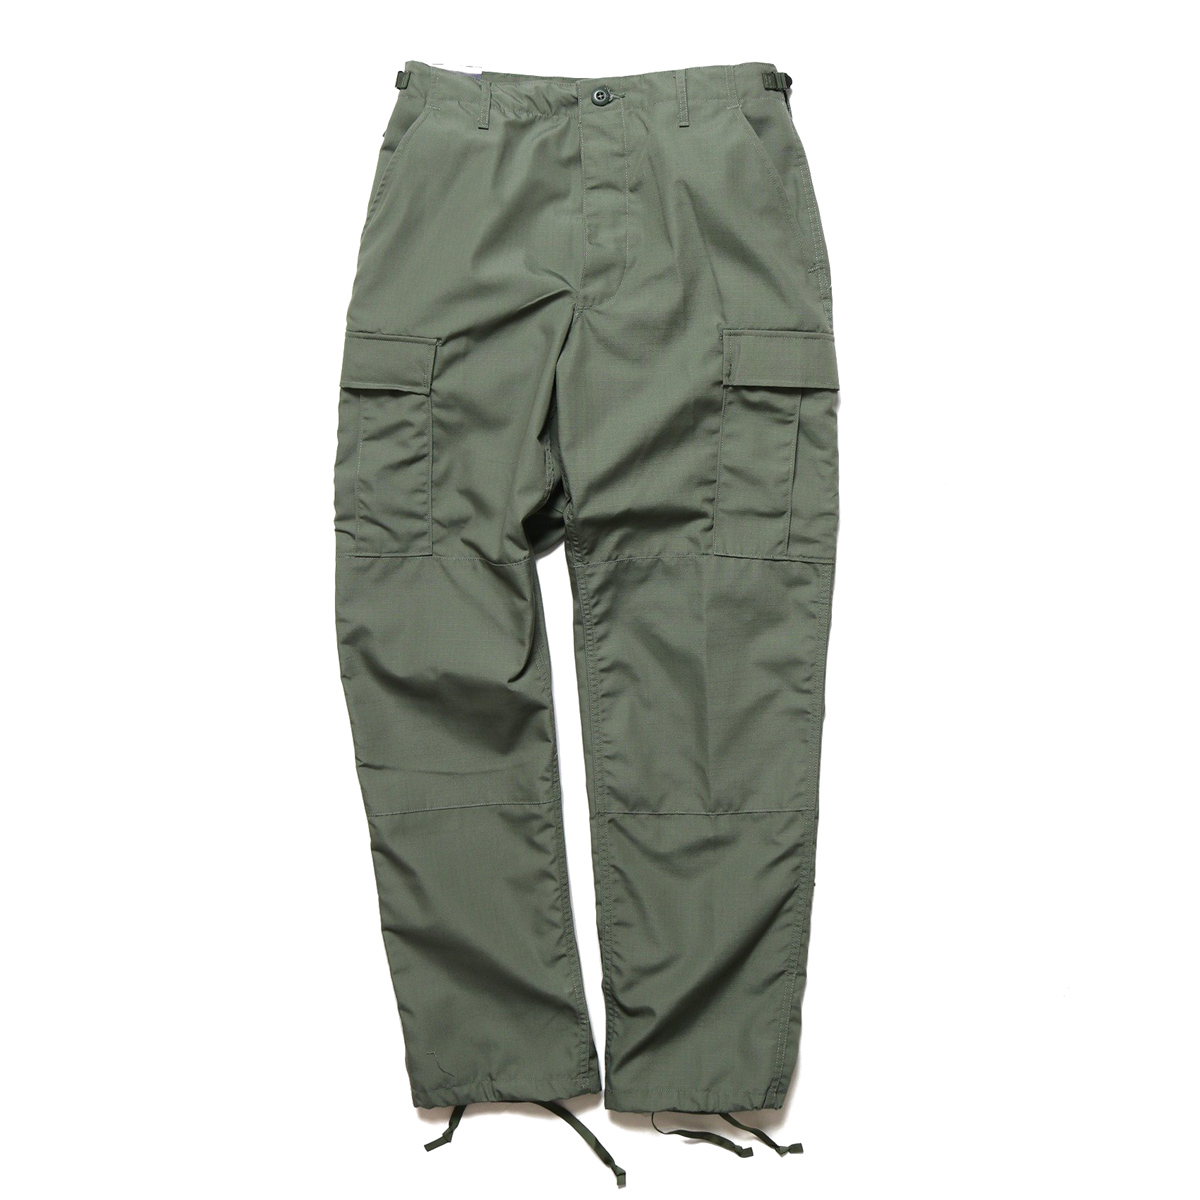 PRPR PANT MILITARY GRN L - Click to enlarge